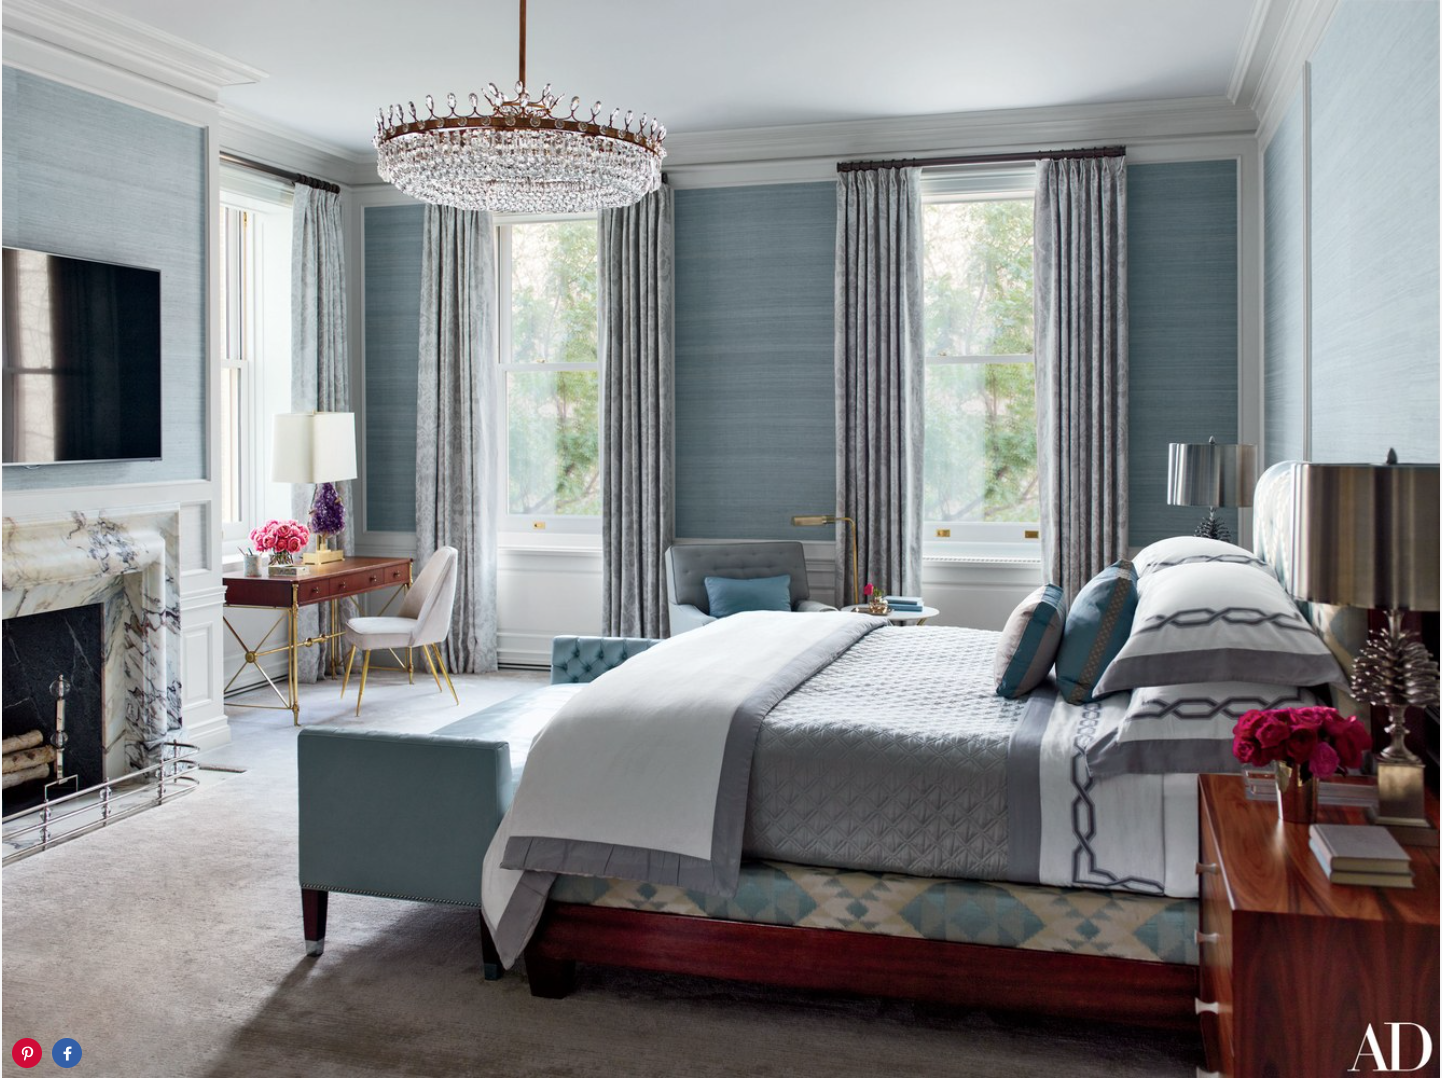 Designed by S. R. Gambrel and crafted by Dune, the master suite's mahogany bed is upholstered in an Old World Weavers fabric and dressed with custom-made bedding by E. Braun & Co.; the curtains are of a de Le Cuona fabric, and a Samsung television is over the fireplace.